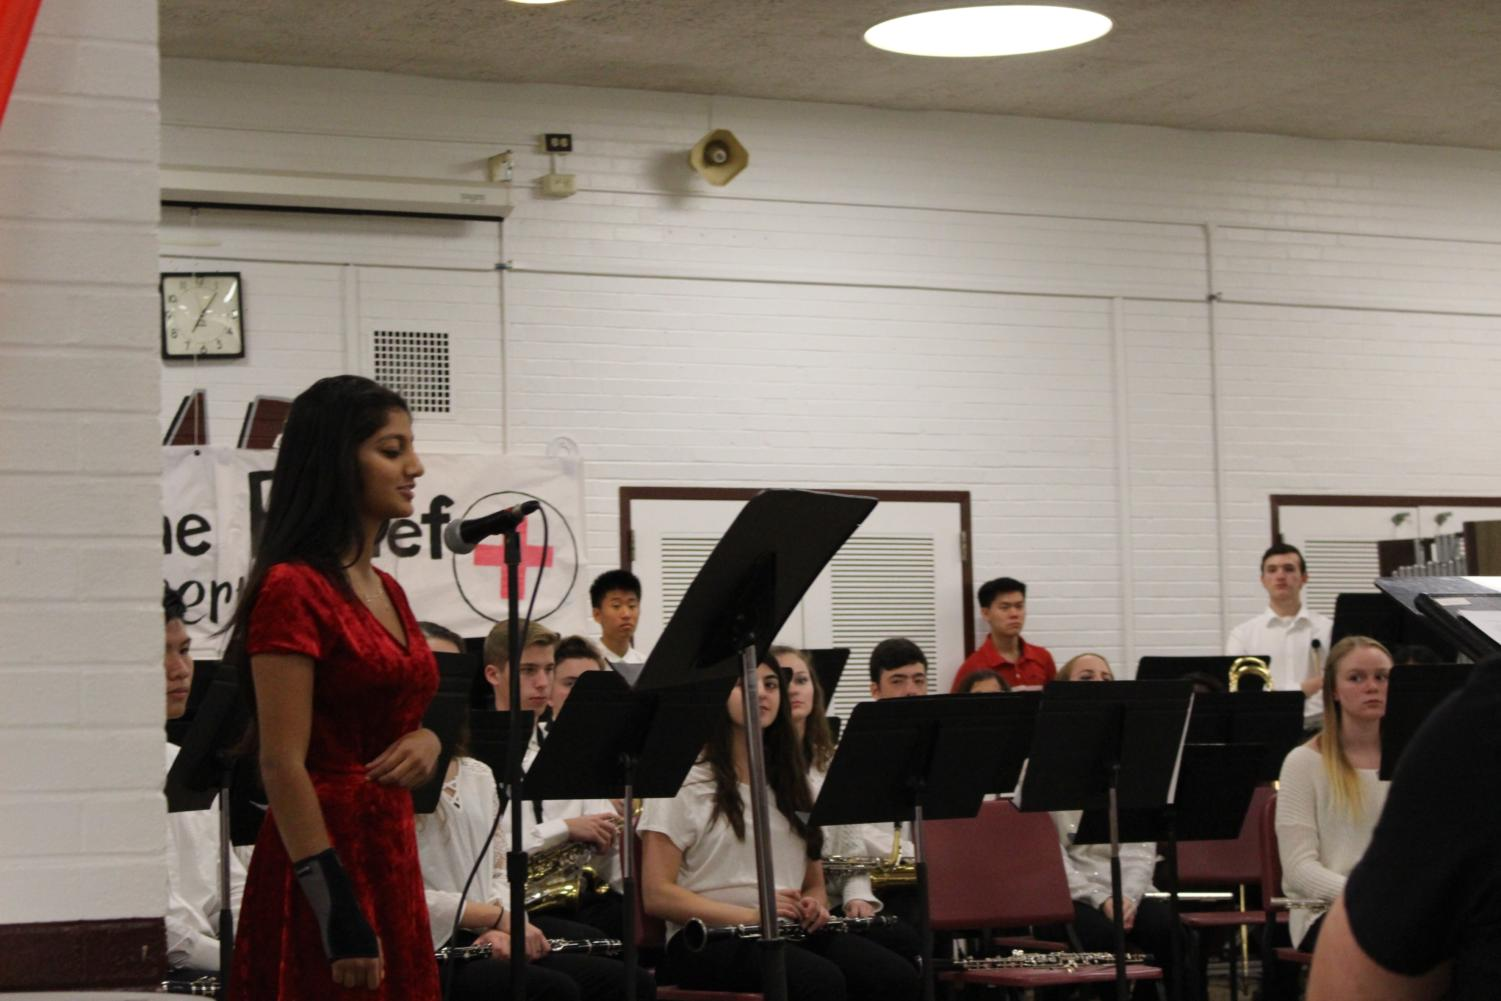 Pooja+Loka%2C+Vice+President+of+the+TRI-M+Music+Honors+Society%2C+introducing+the+TRI-M+choir+volunteers+and+their+performance+of+%22We+Are+The+World.%22+